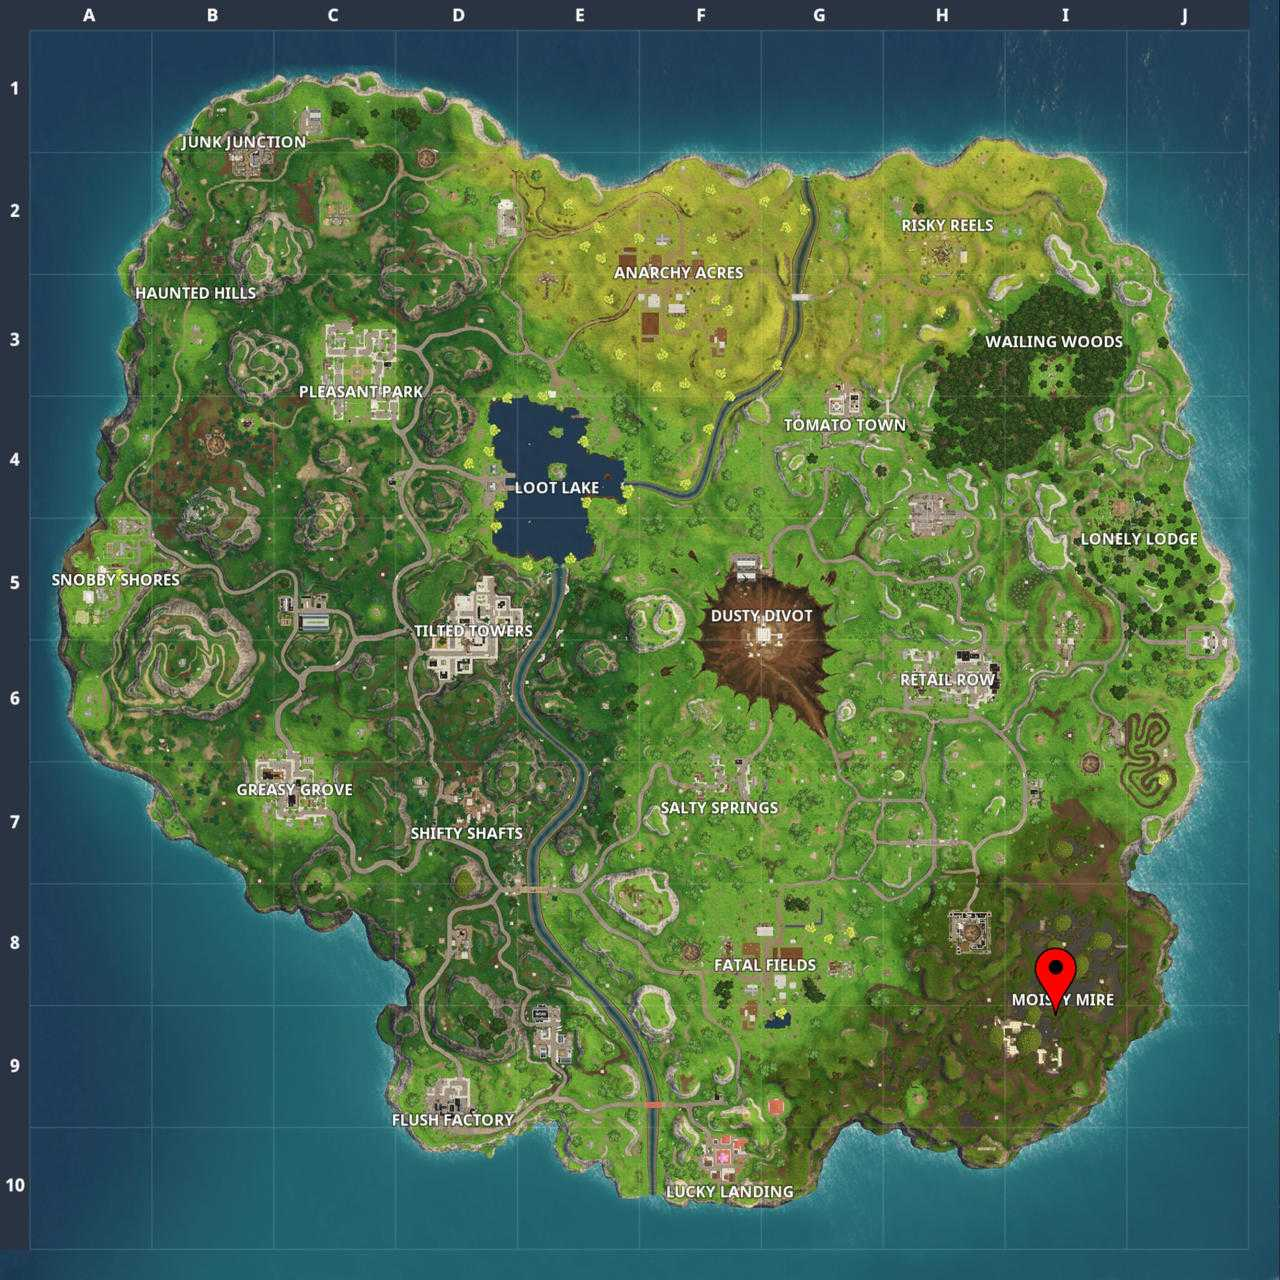 Fortnite Week 4 Map: Search Between A Bench, Ice Cream Truck, And Helicopter Location (Season 4 Challenges)